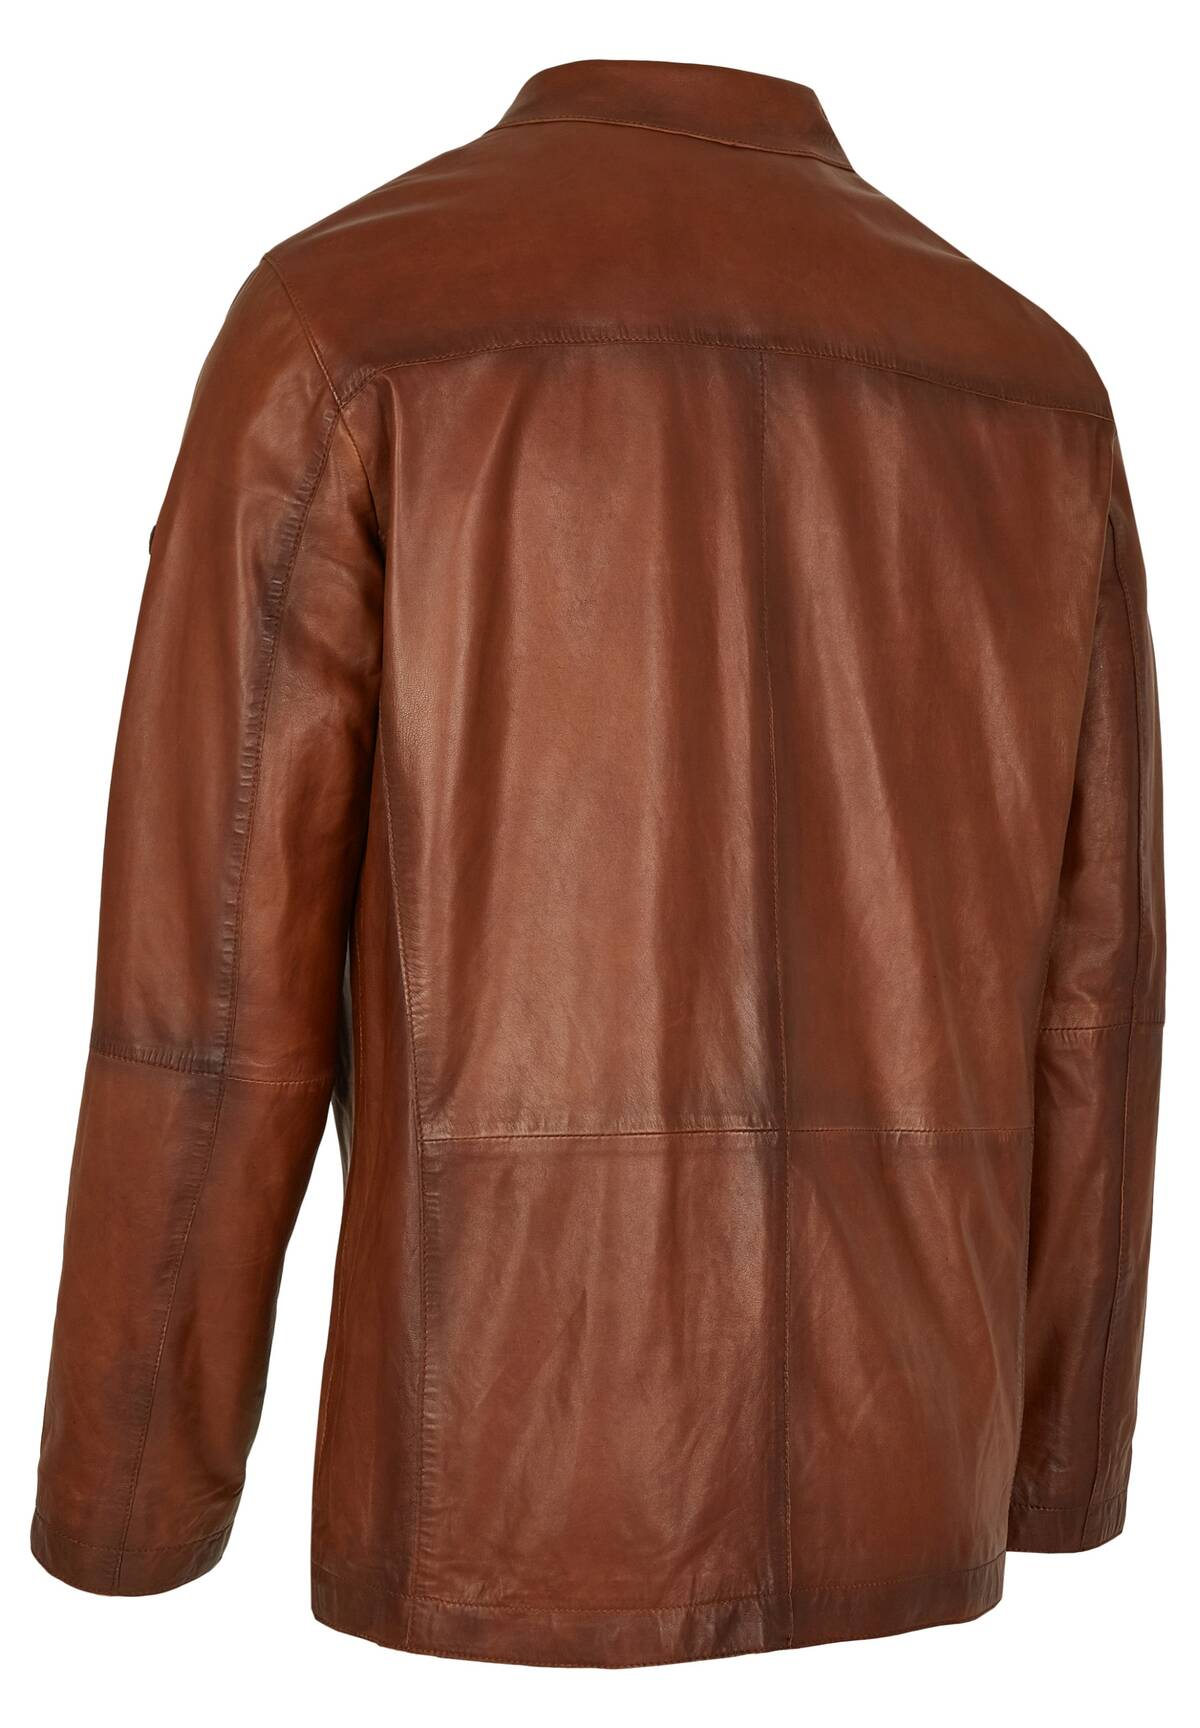 Lässige Fieldjacket Lederjacke / LEATHER-FIELDJACKET